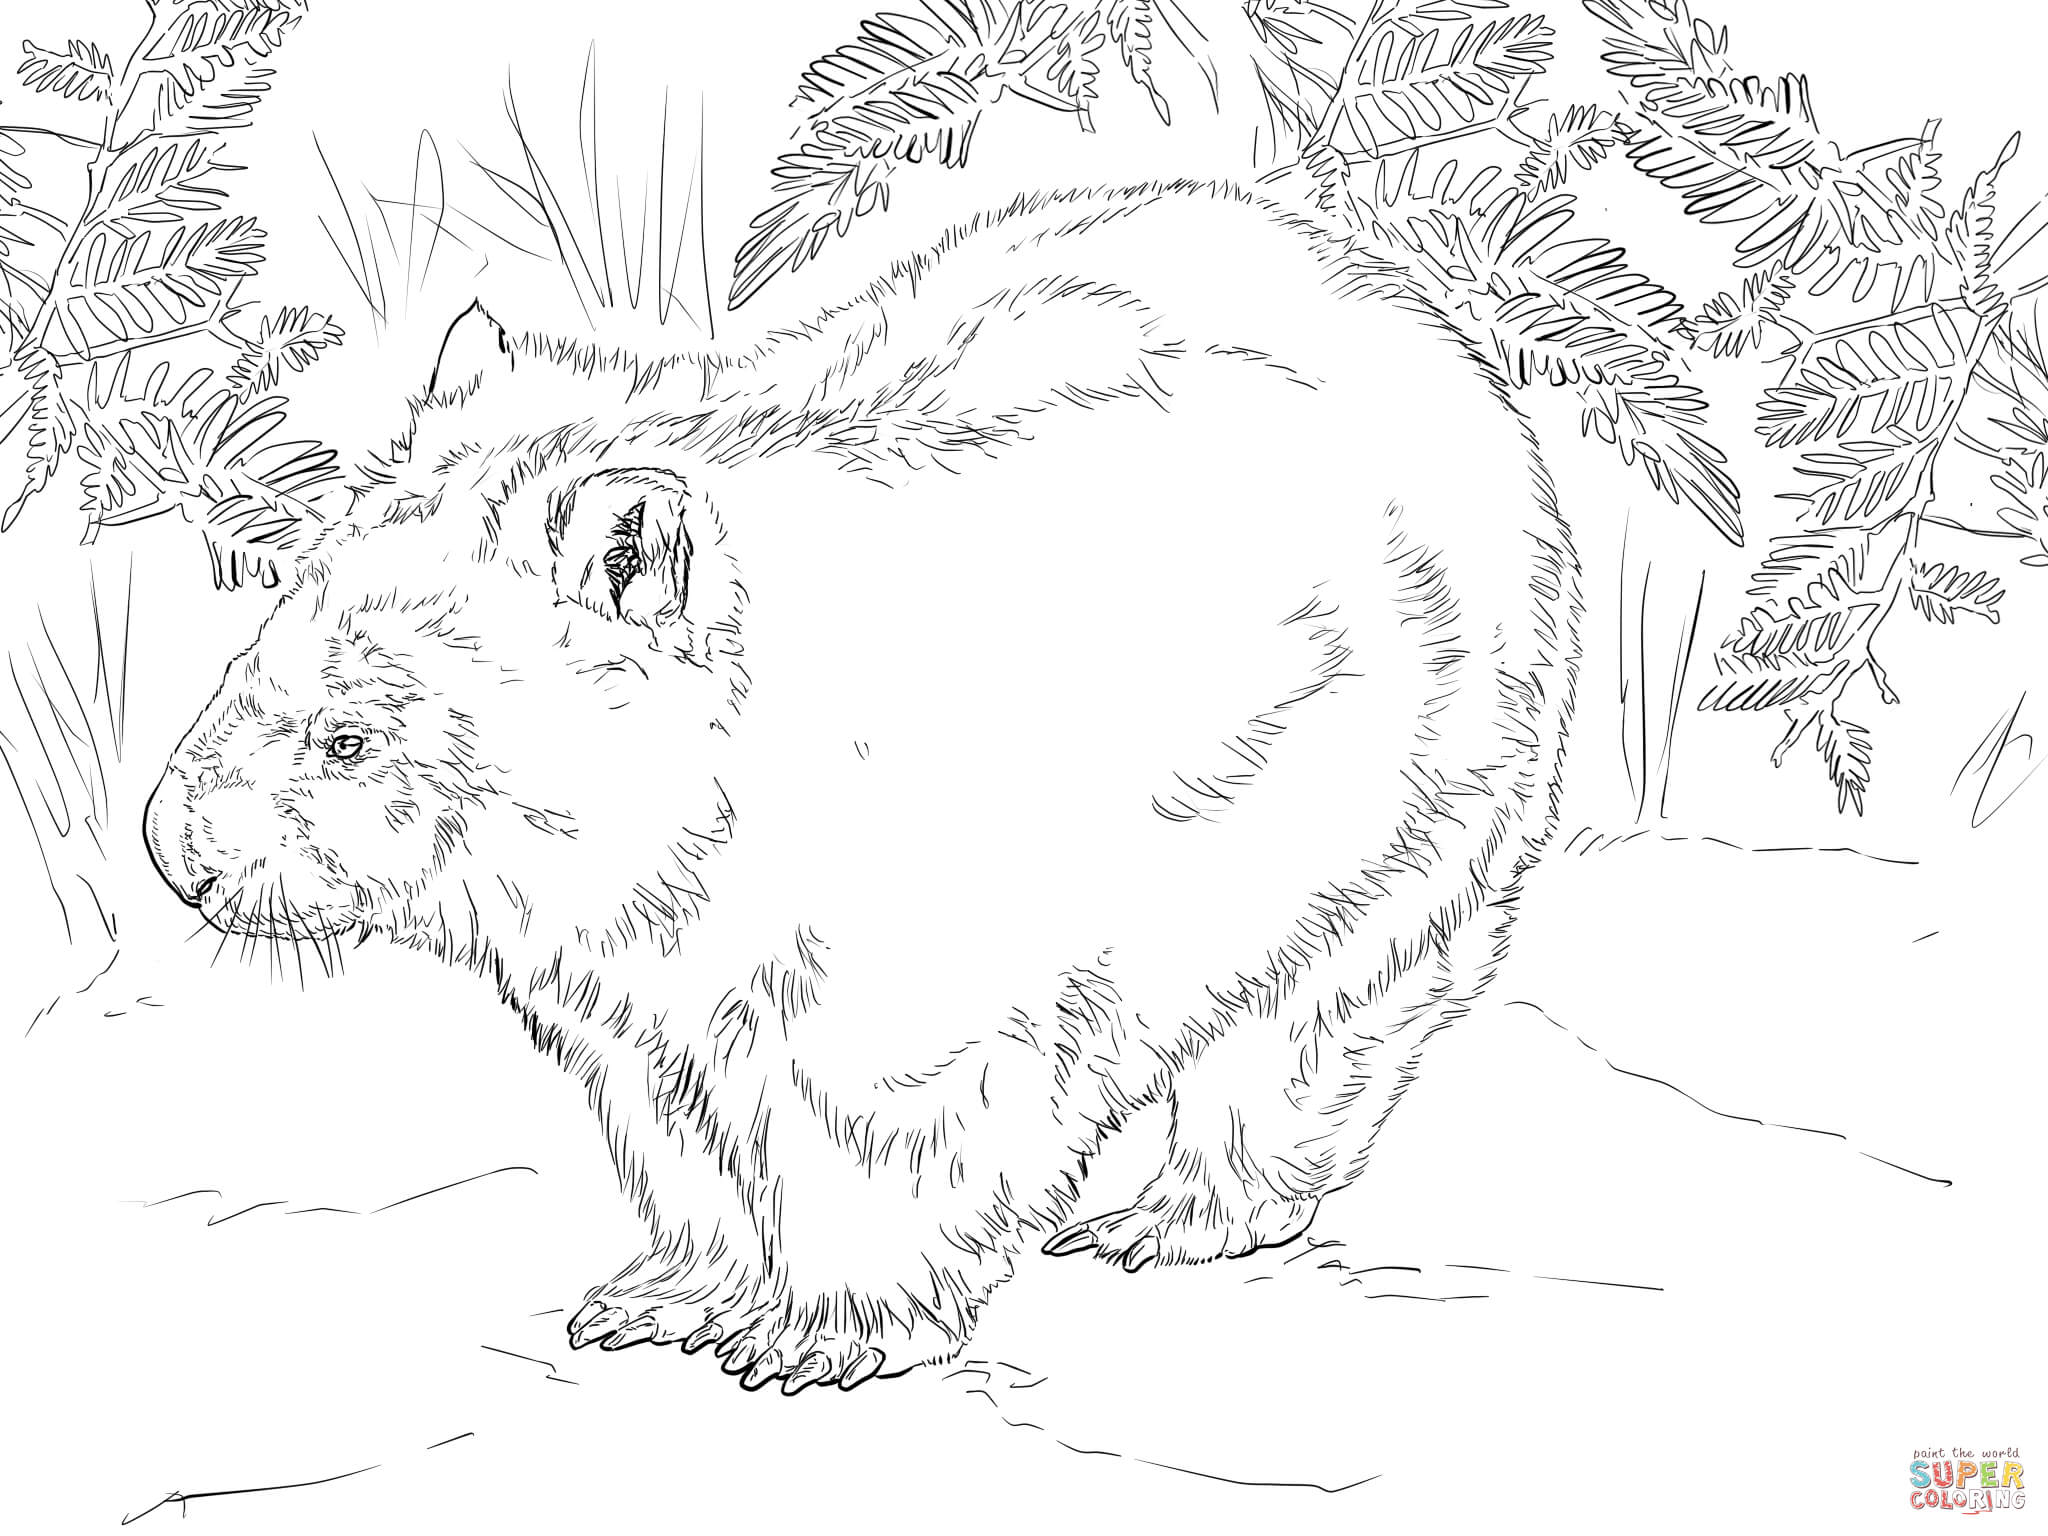 wombat colouring pages cute wombat coloring page free printable coloring pages colouring wombat pages